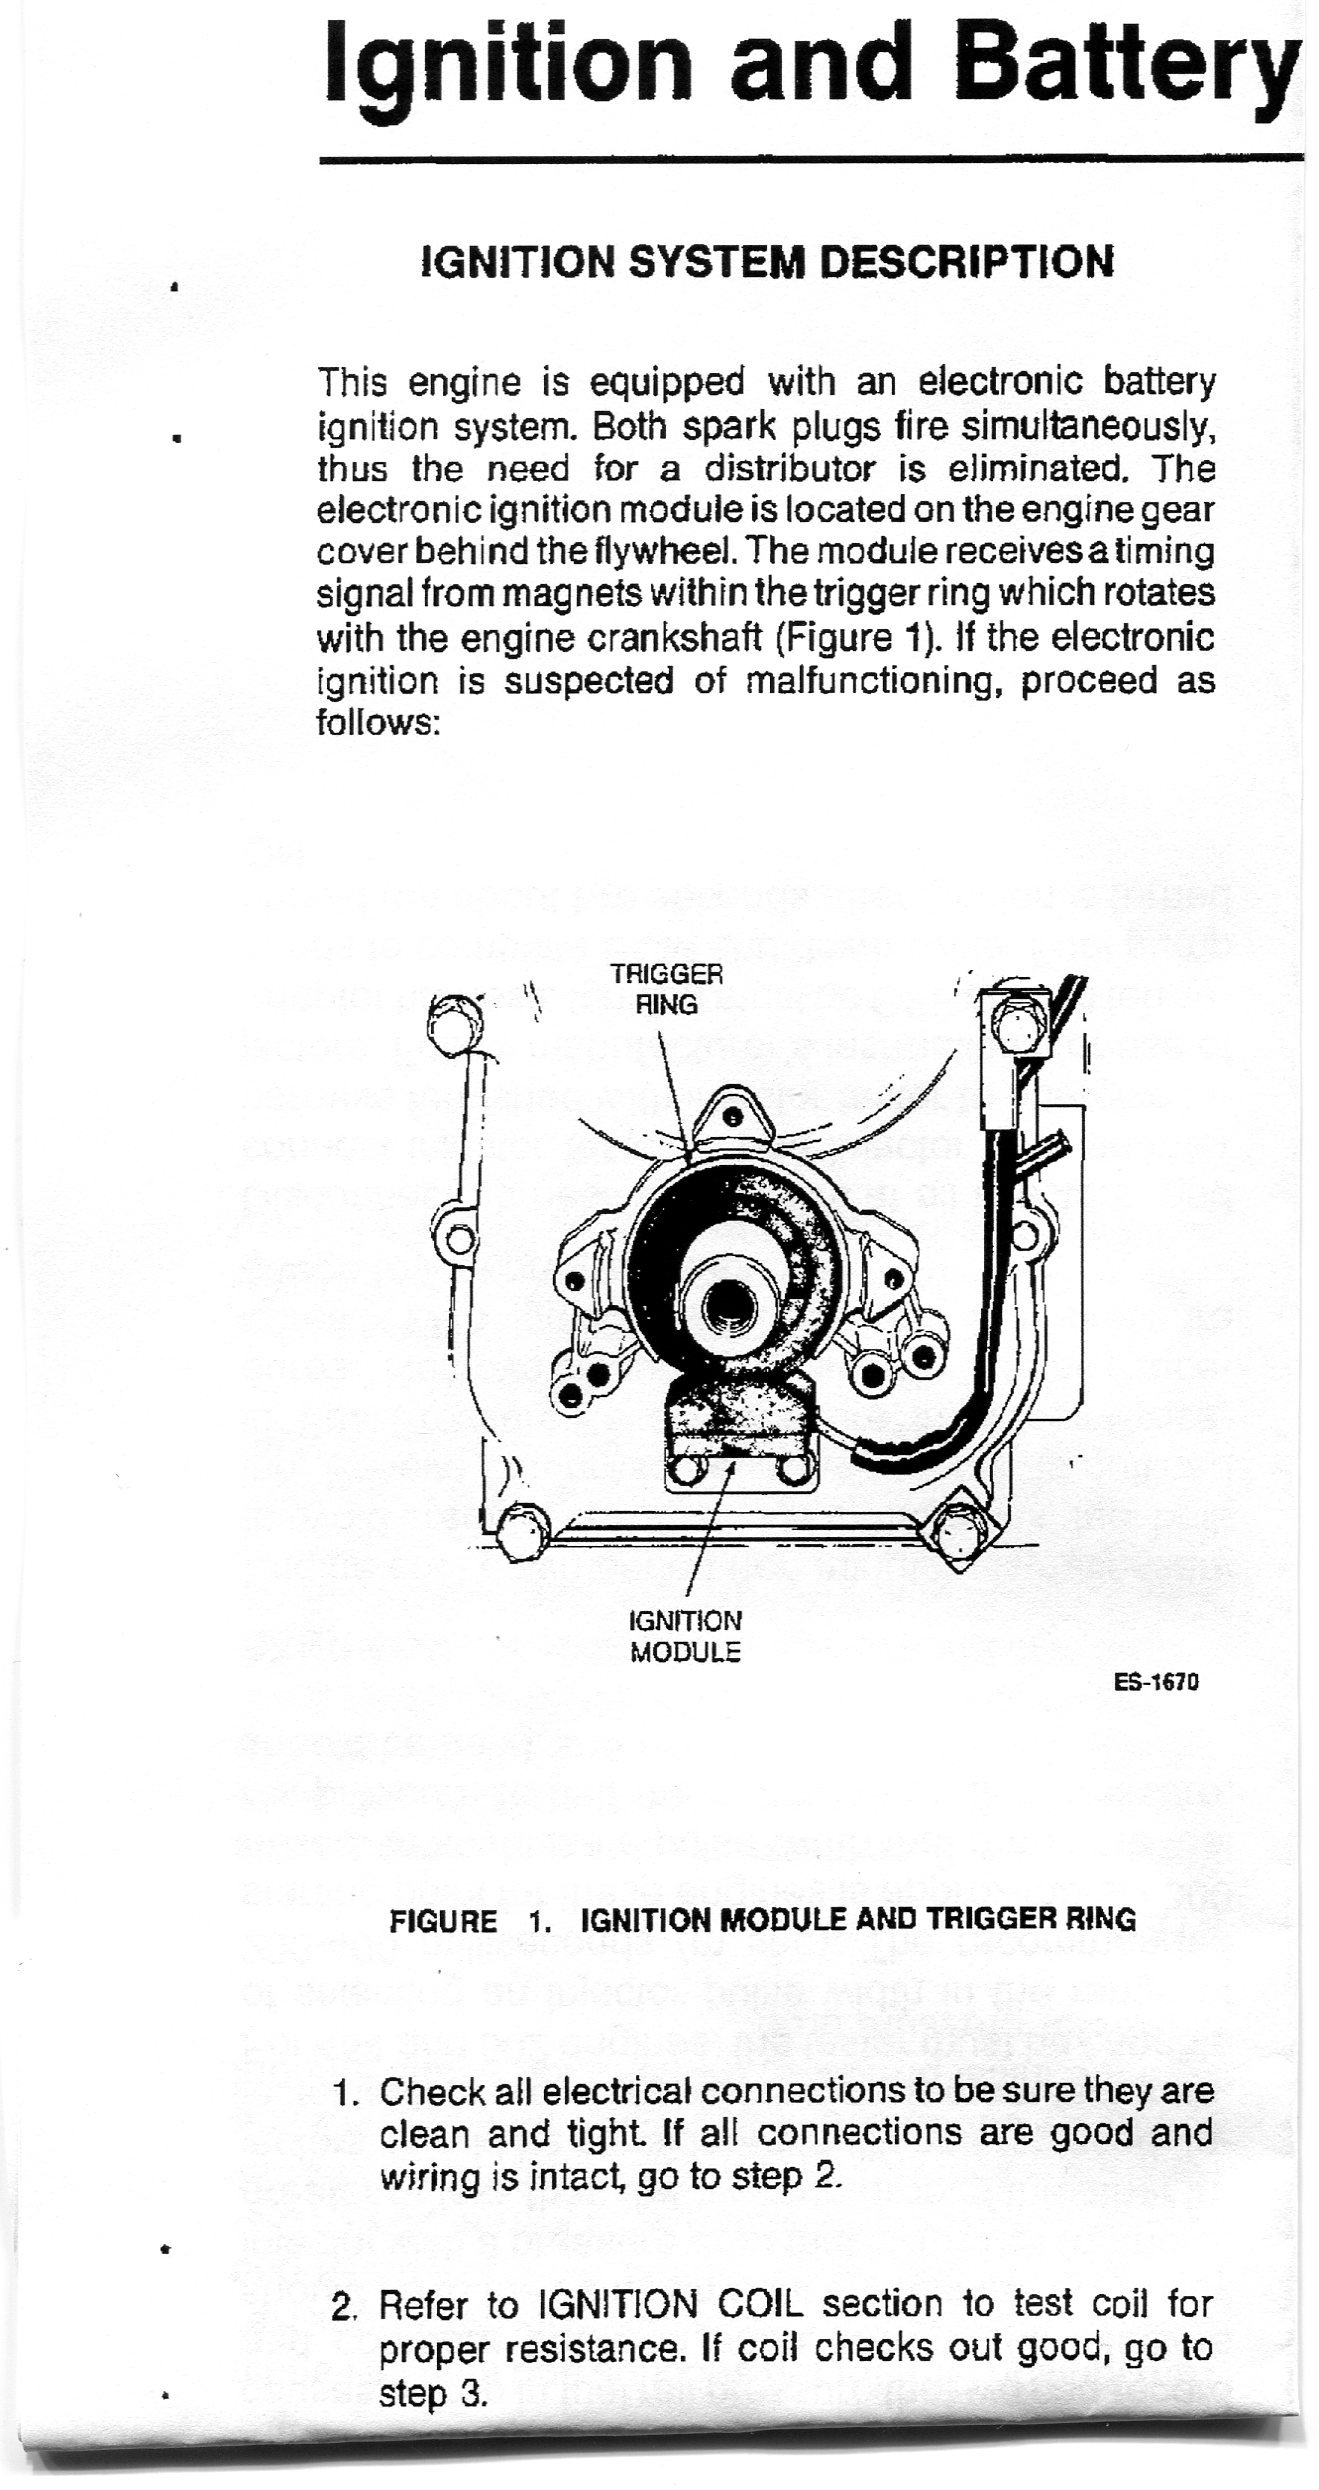 Onan P220 With 748 Hrs On Craftsman Lawn Tractor Running Fine Briggs And Stratton Carburetor Diagram Http Wwwjustanswercom Small Graphic